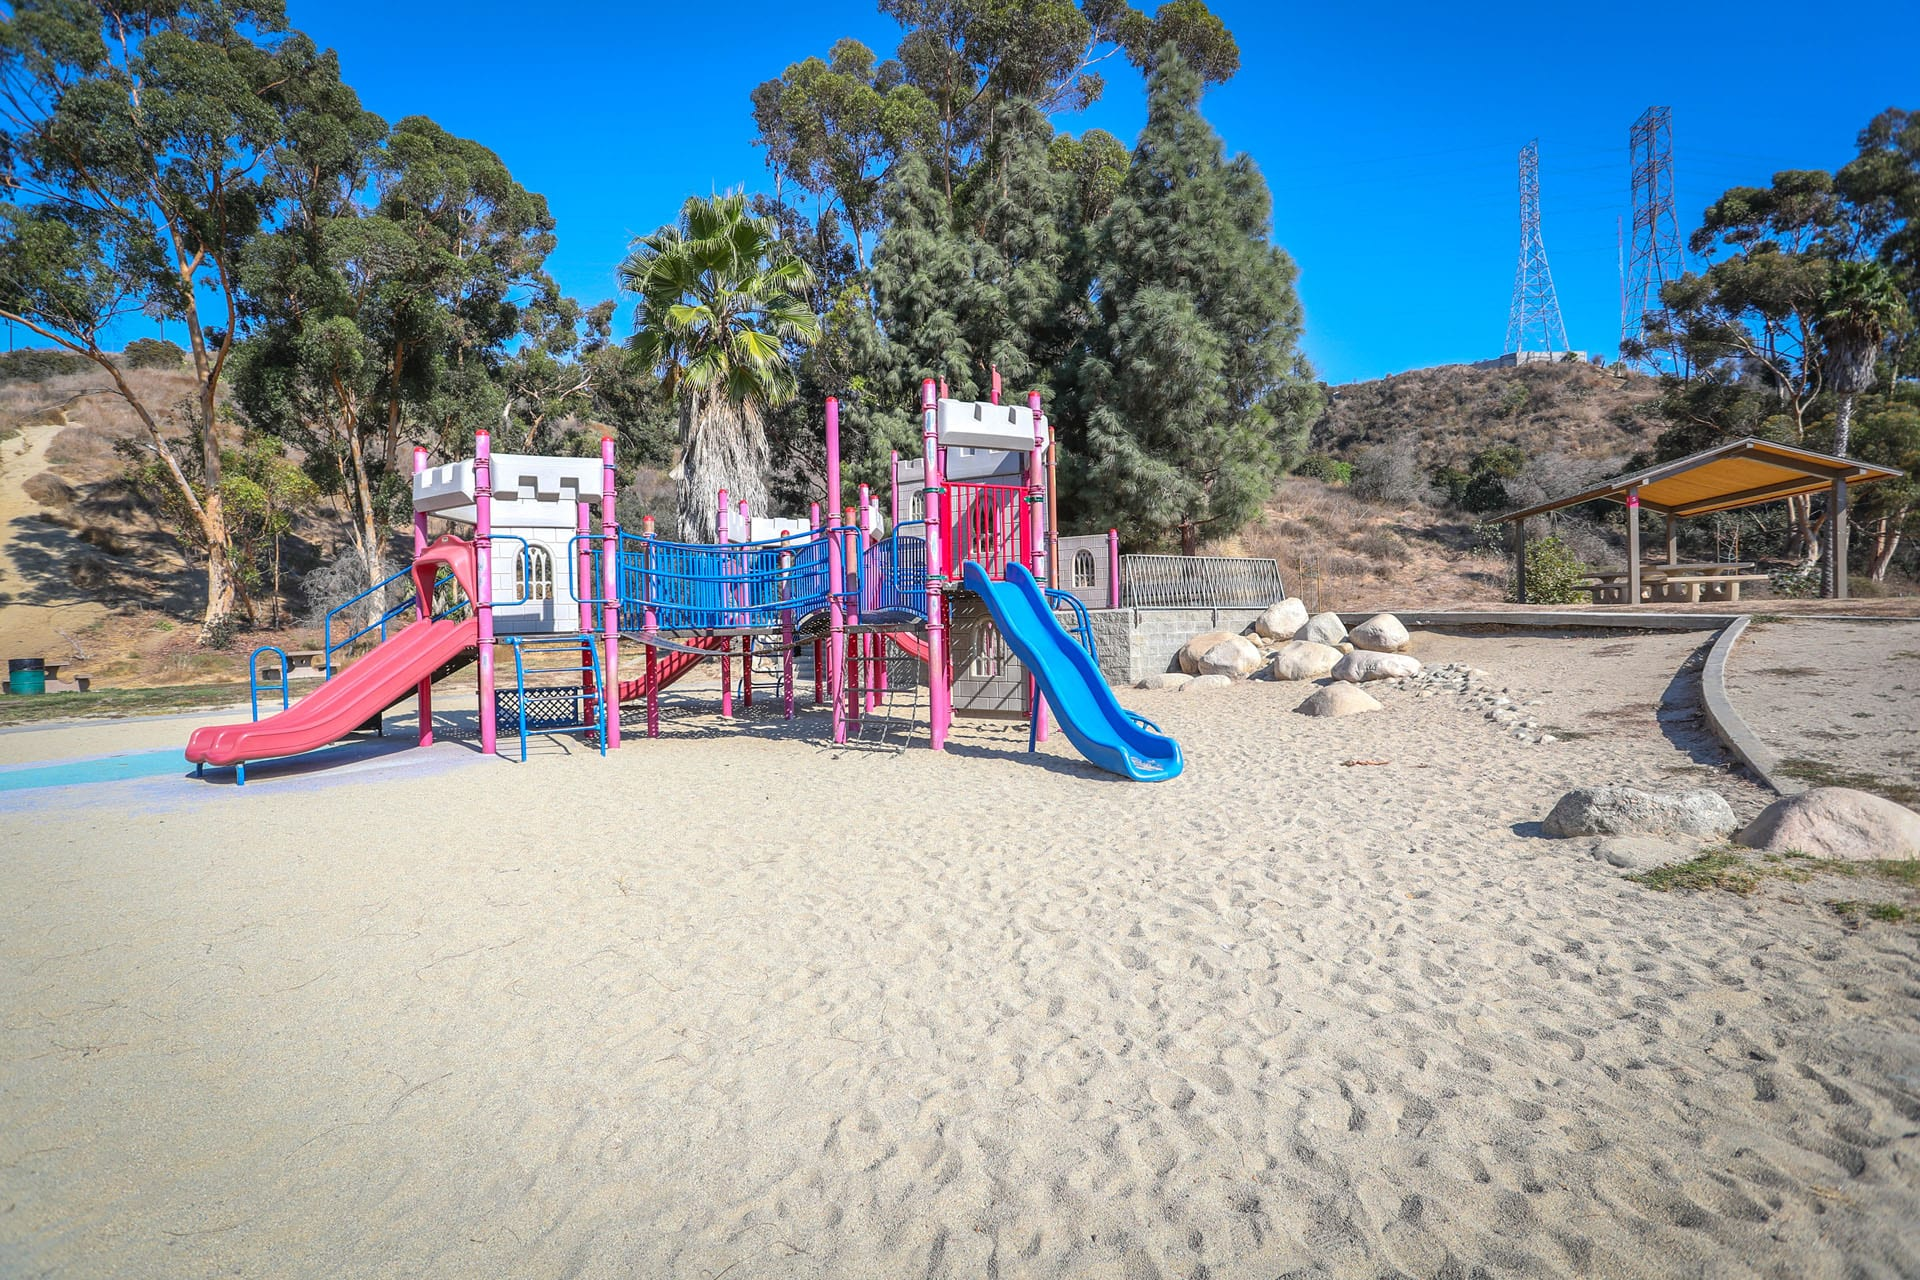 Playground on a sand bed